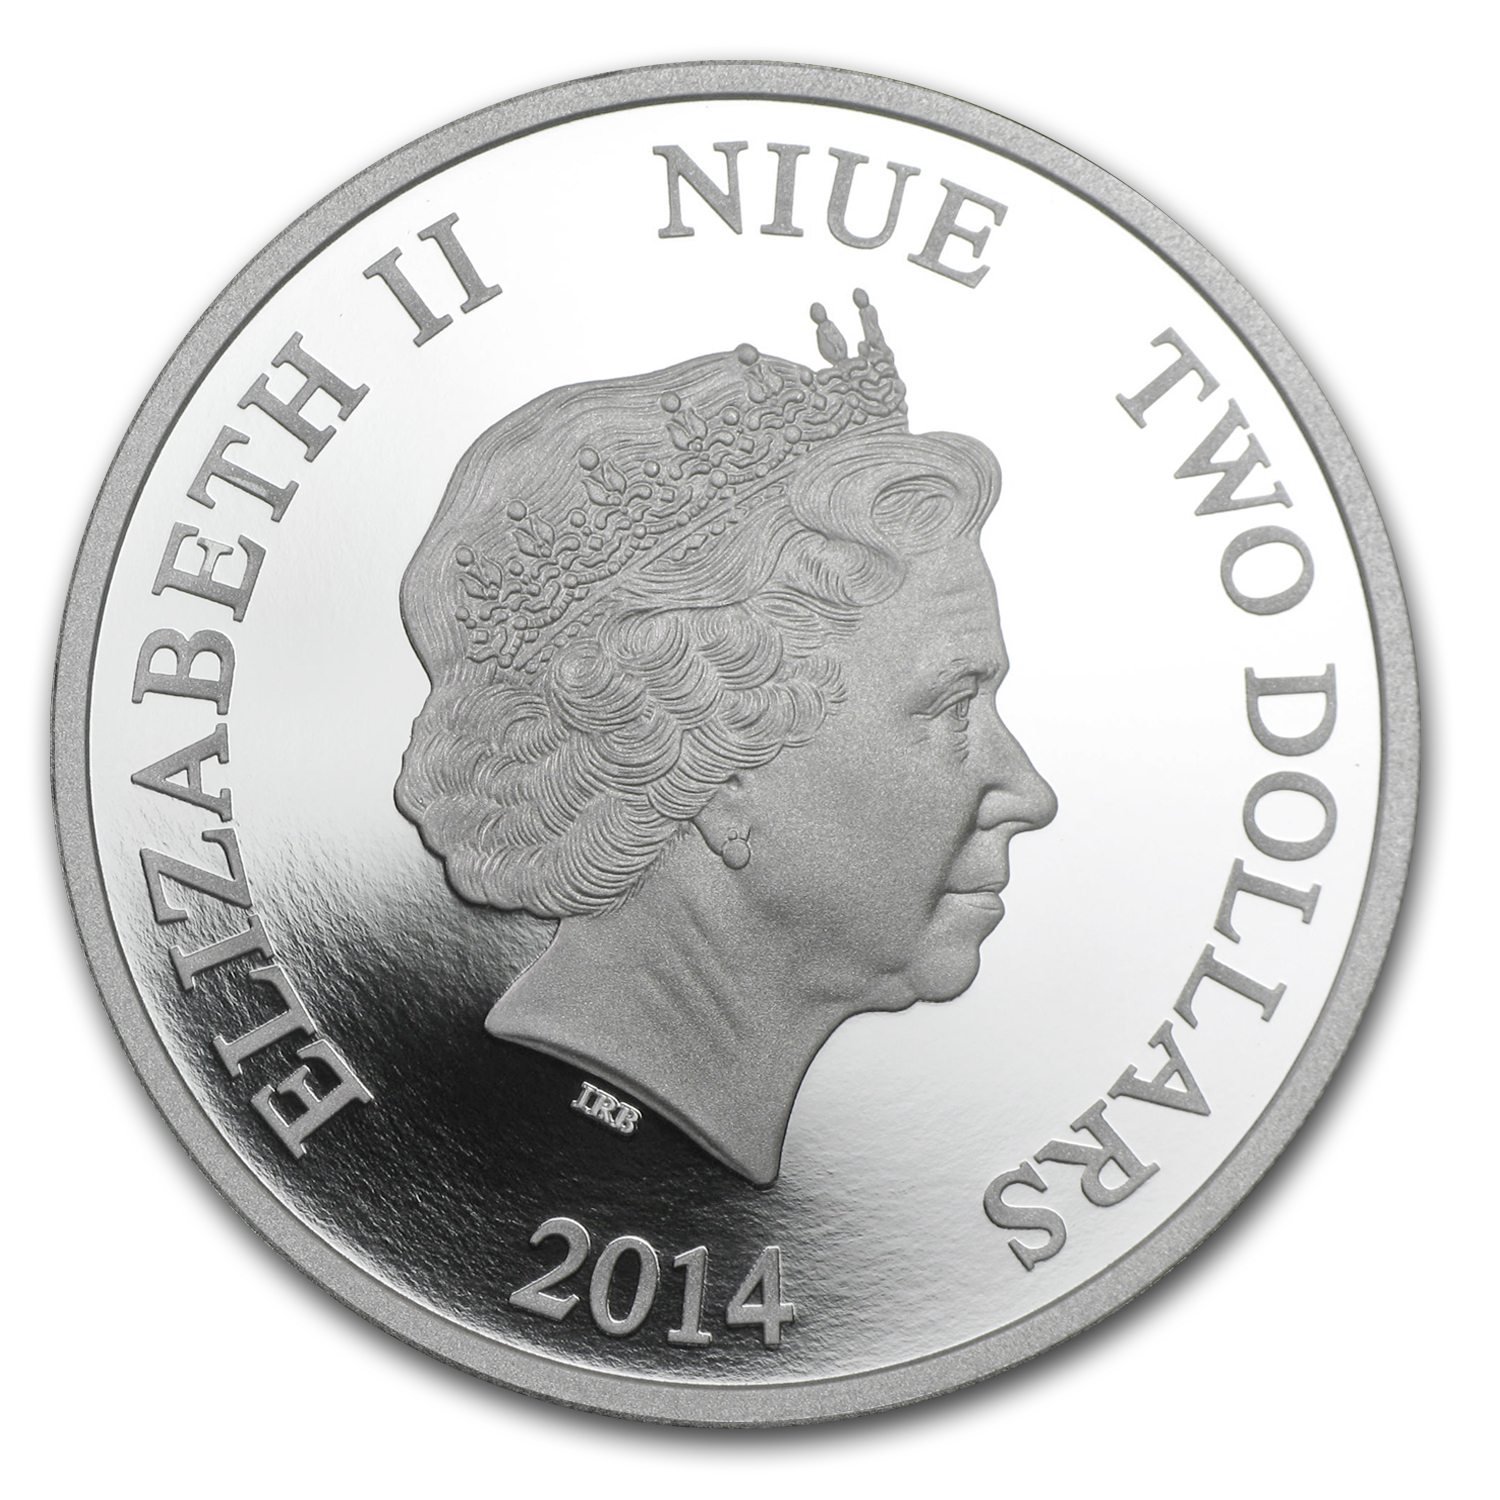 2014 1 oz Silver $2 Niue Disney Donald Duck